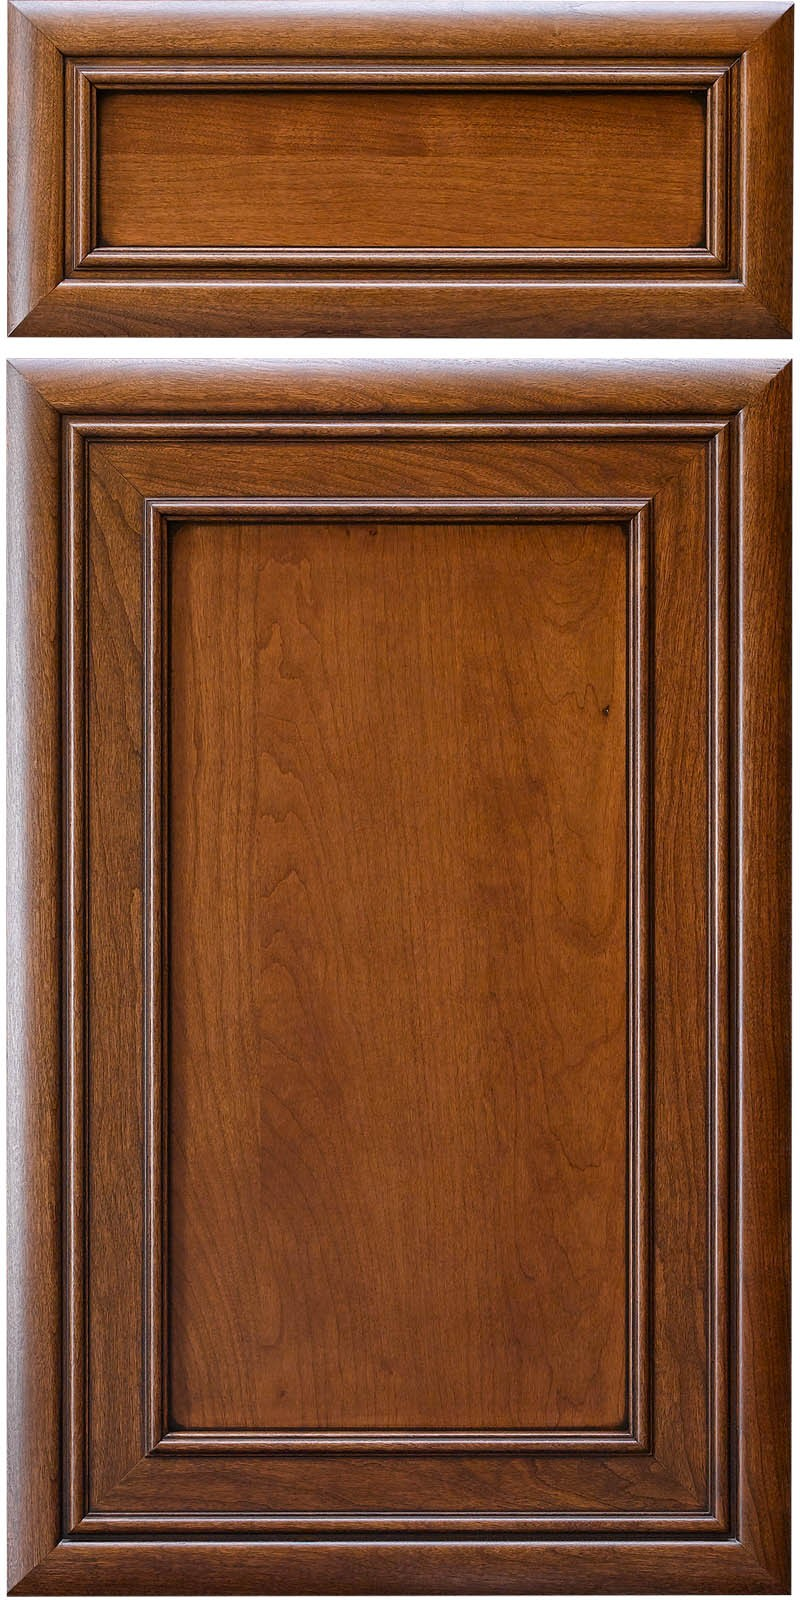 Crp10946 Solid Wood Materials Cabinet Doors Drawer Fronts Products